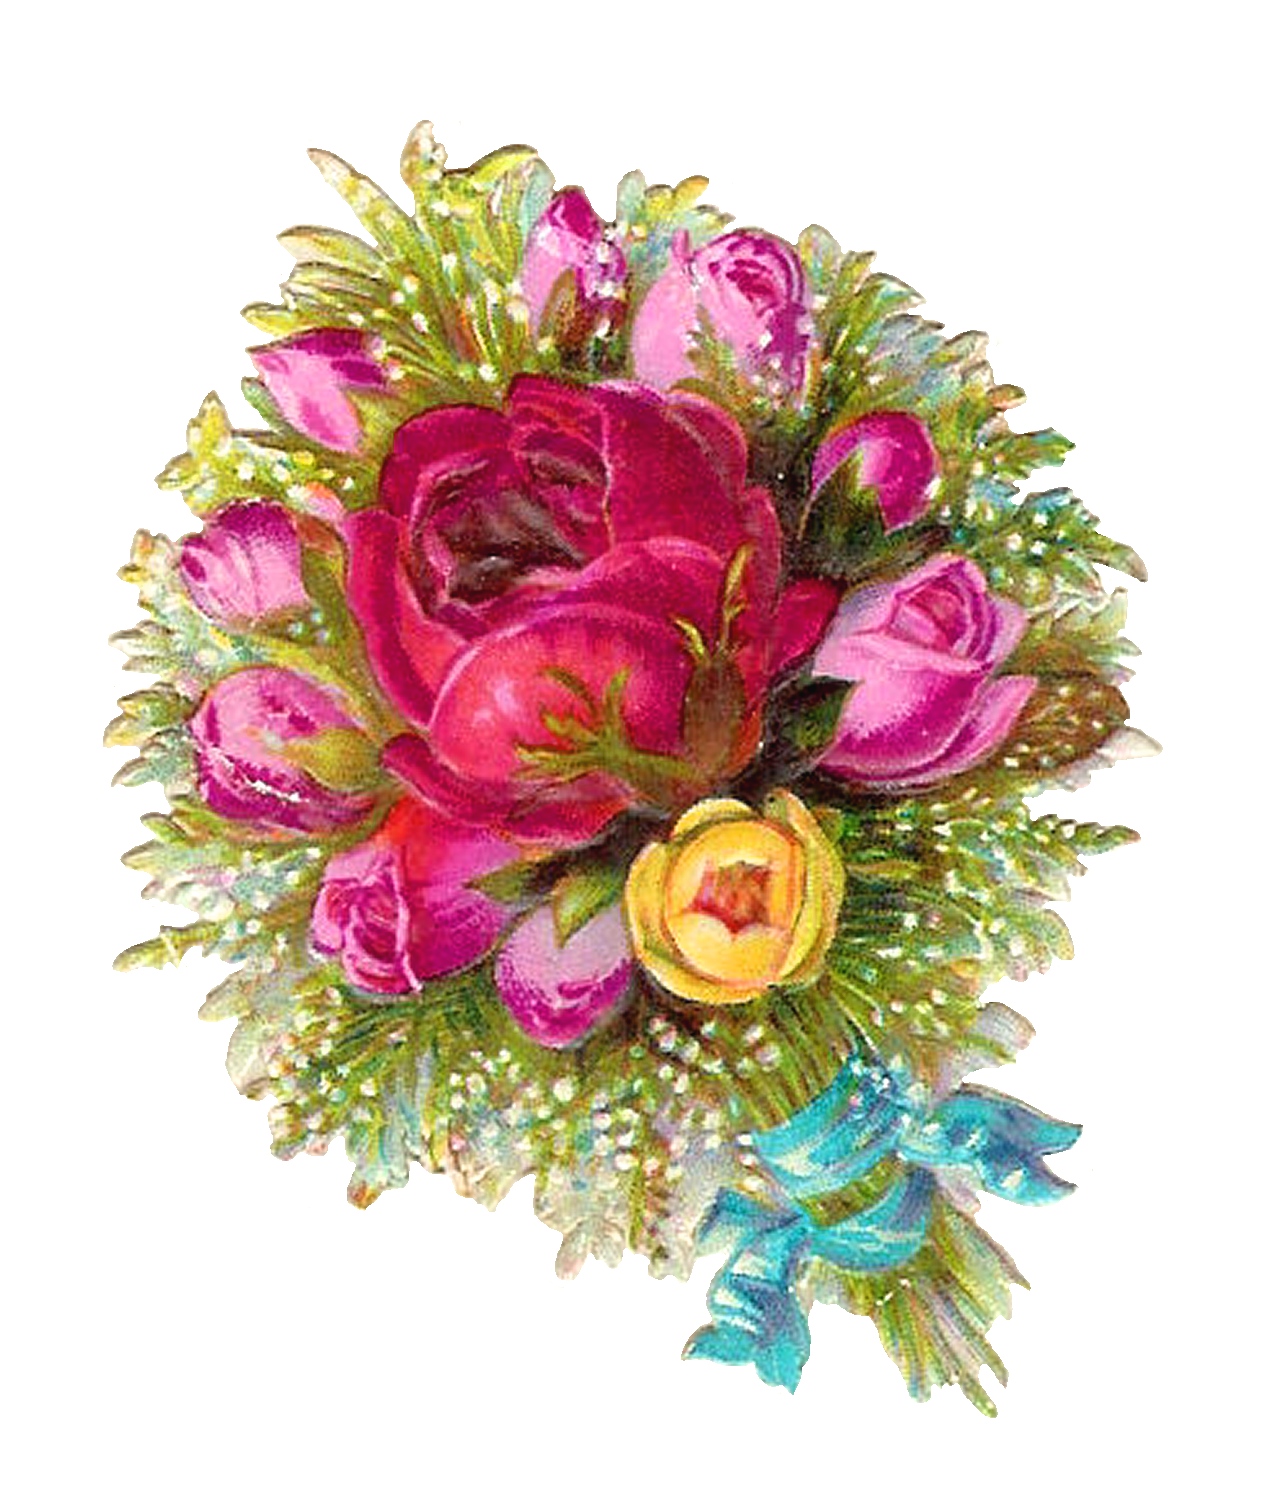 Antique Images Digital Scrapbooking Flower Bouquet With Pink And